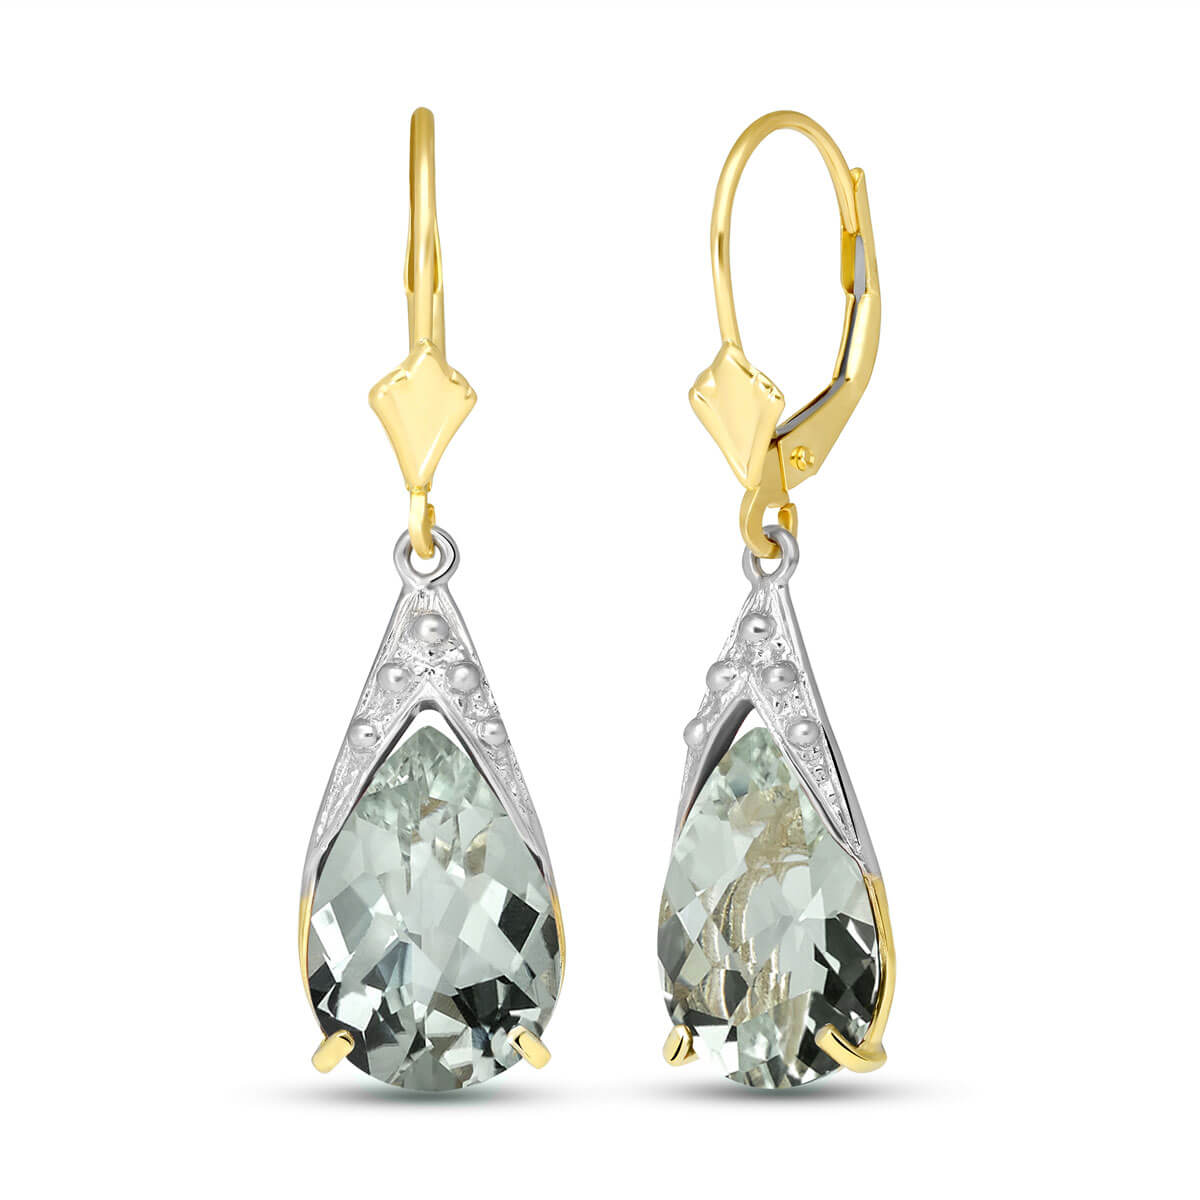 Green Amethyst Snowcap Drop Earrings 10 ctw in 9ct Gold